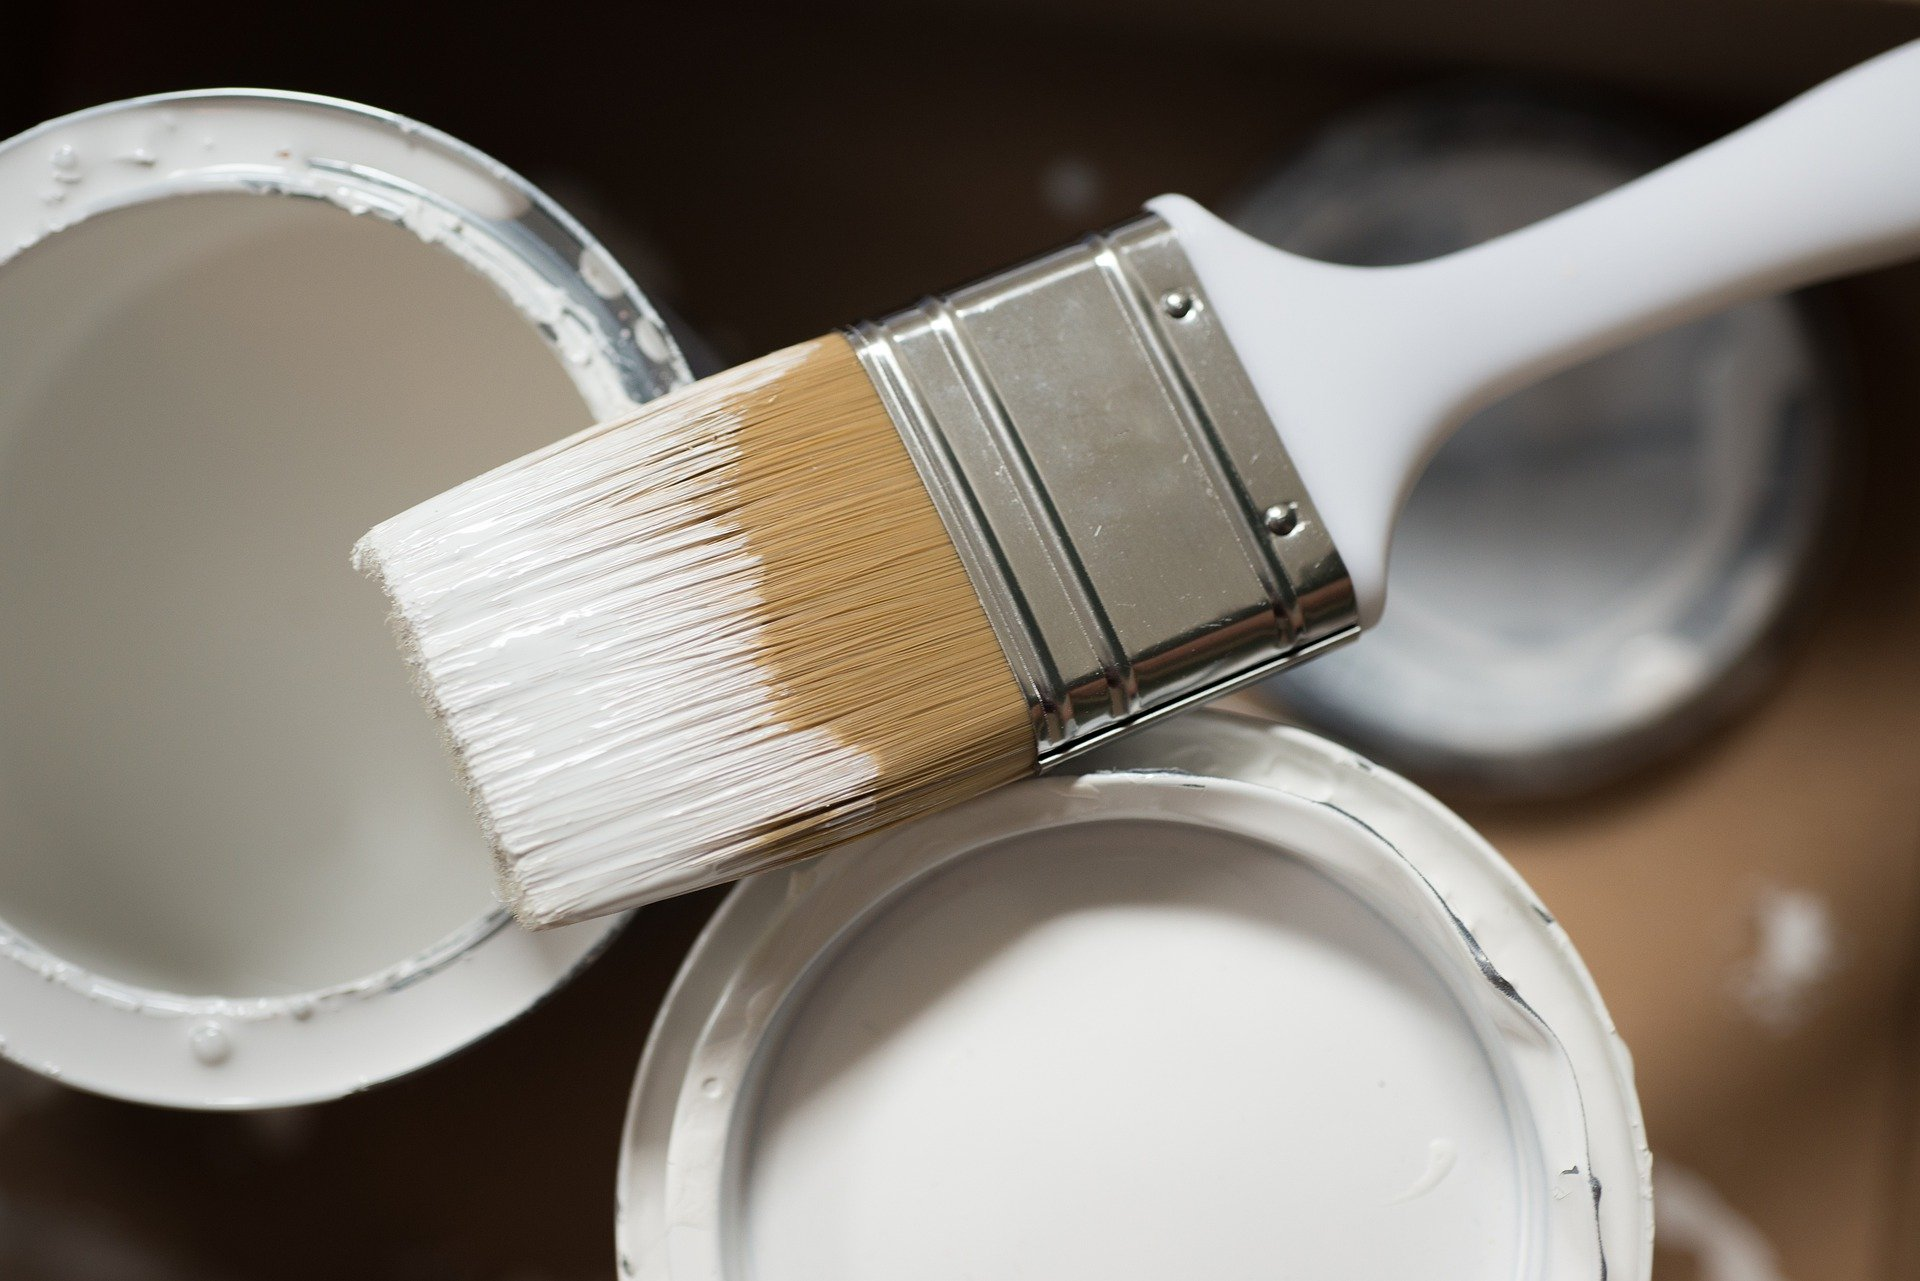 Paint pots, paint brushes and home makeover ideas